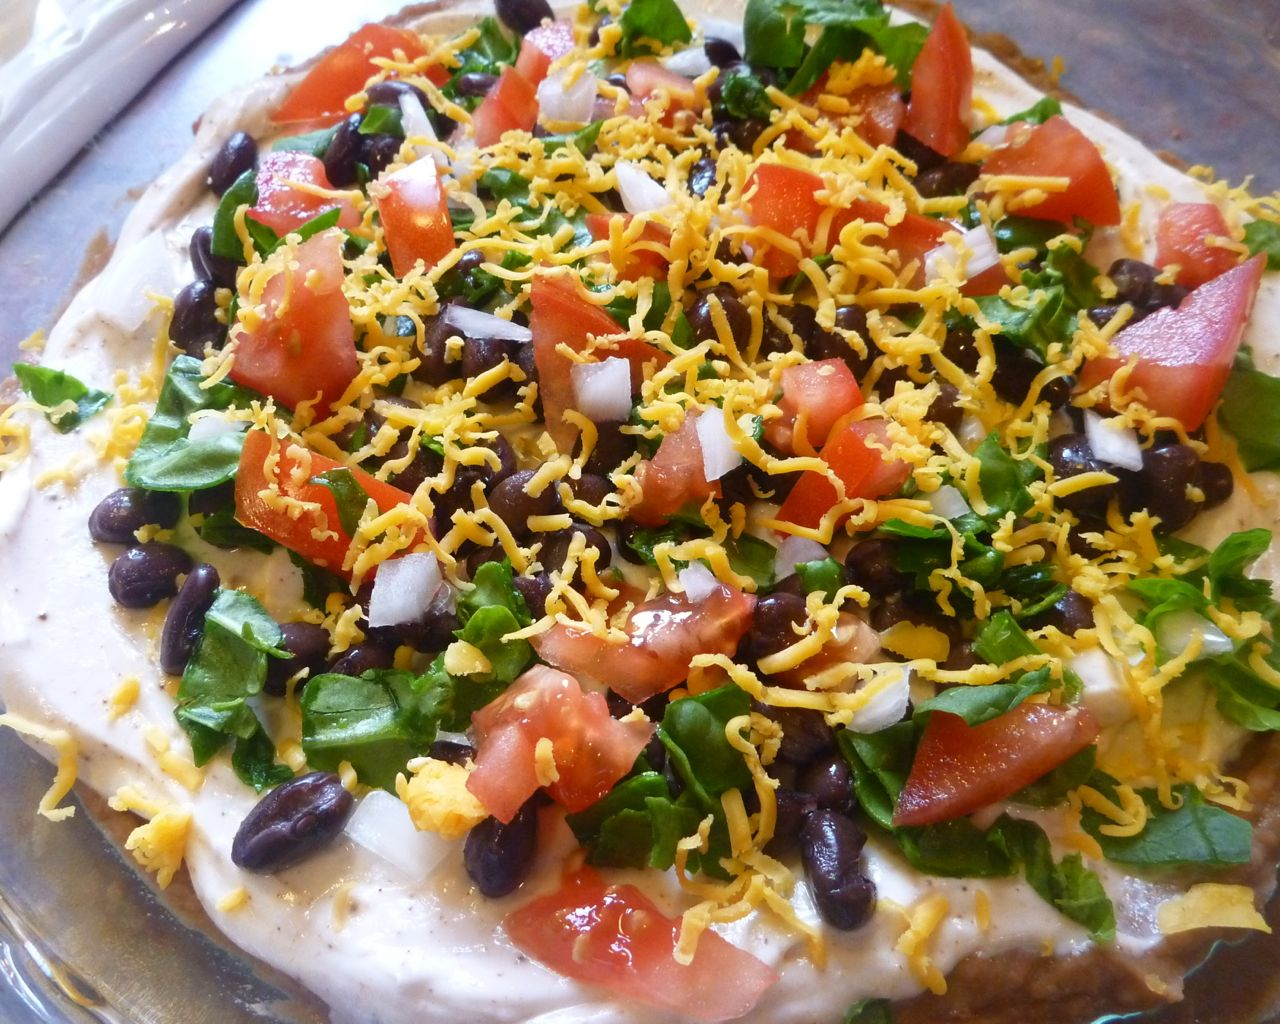 layered taco dip - Taco Dip - Photo, Picture, Image and Wallpaper ...